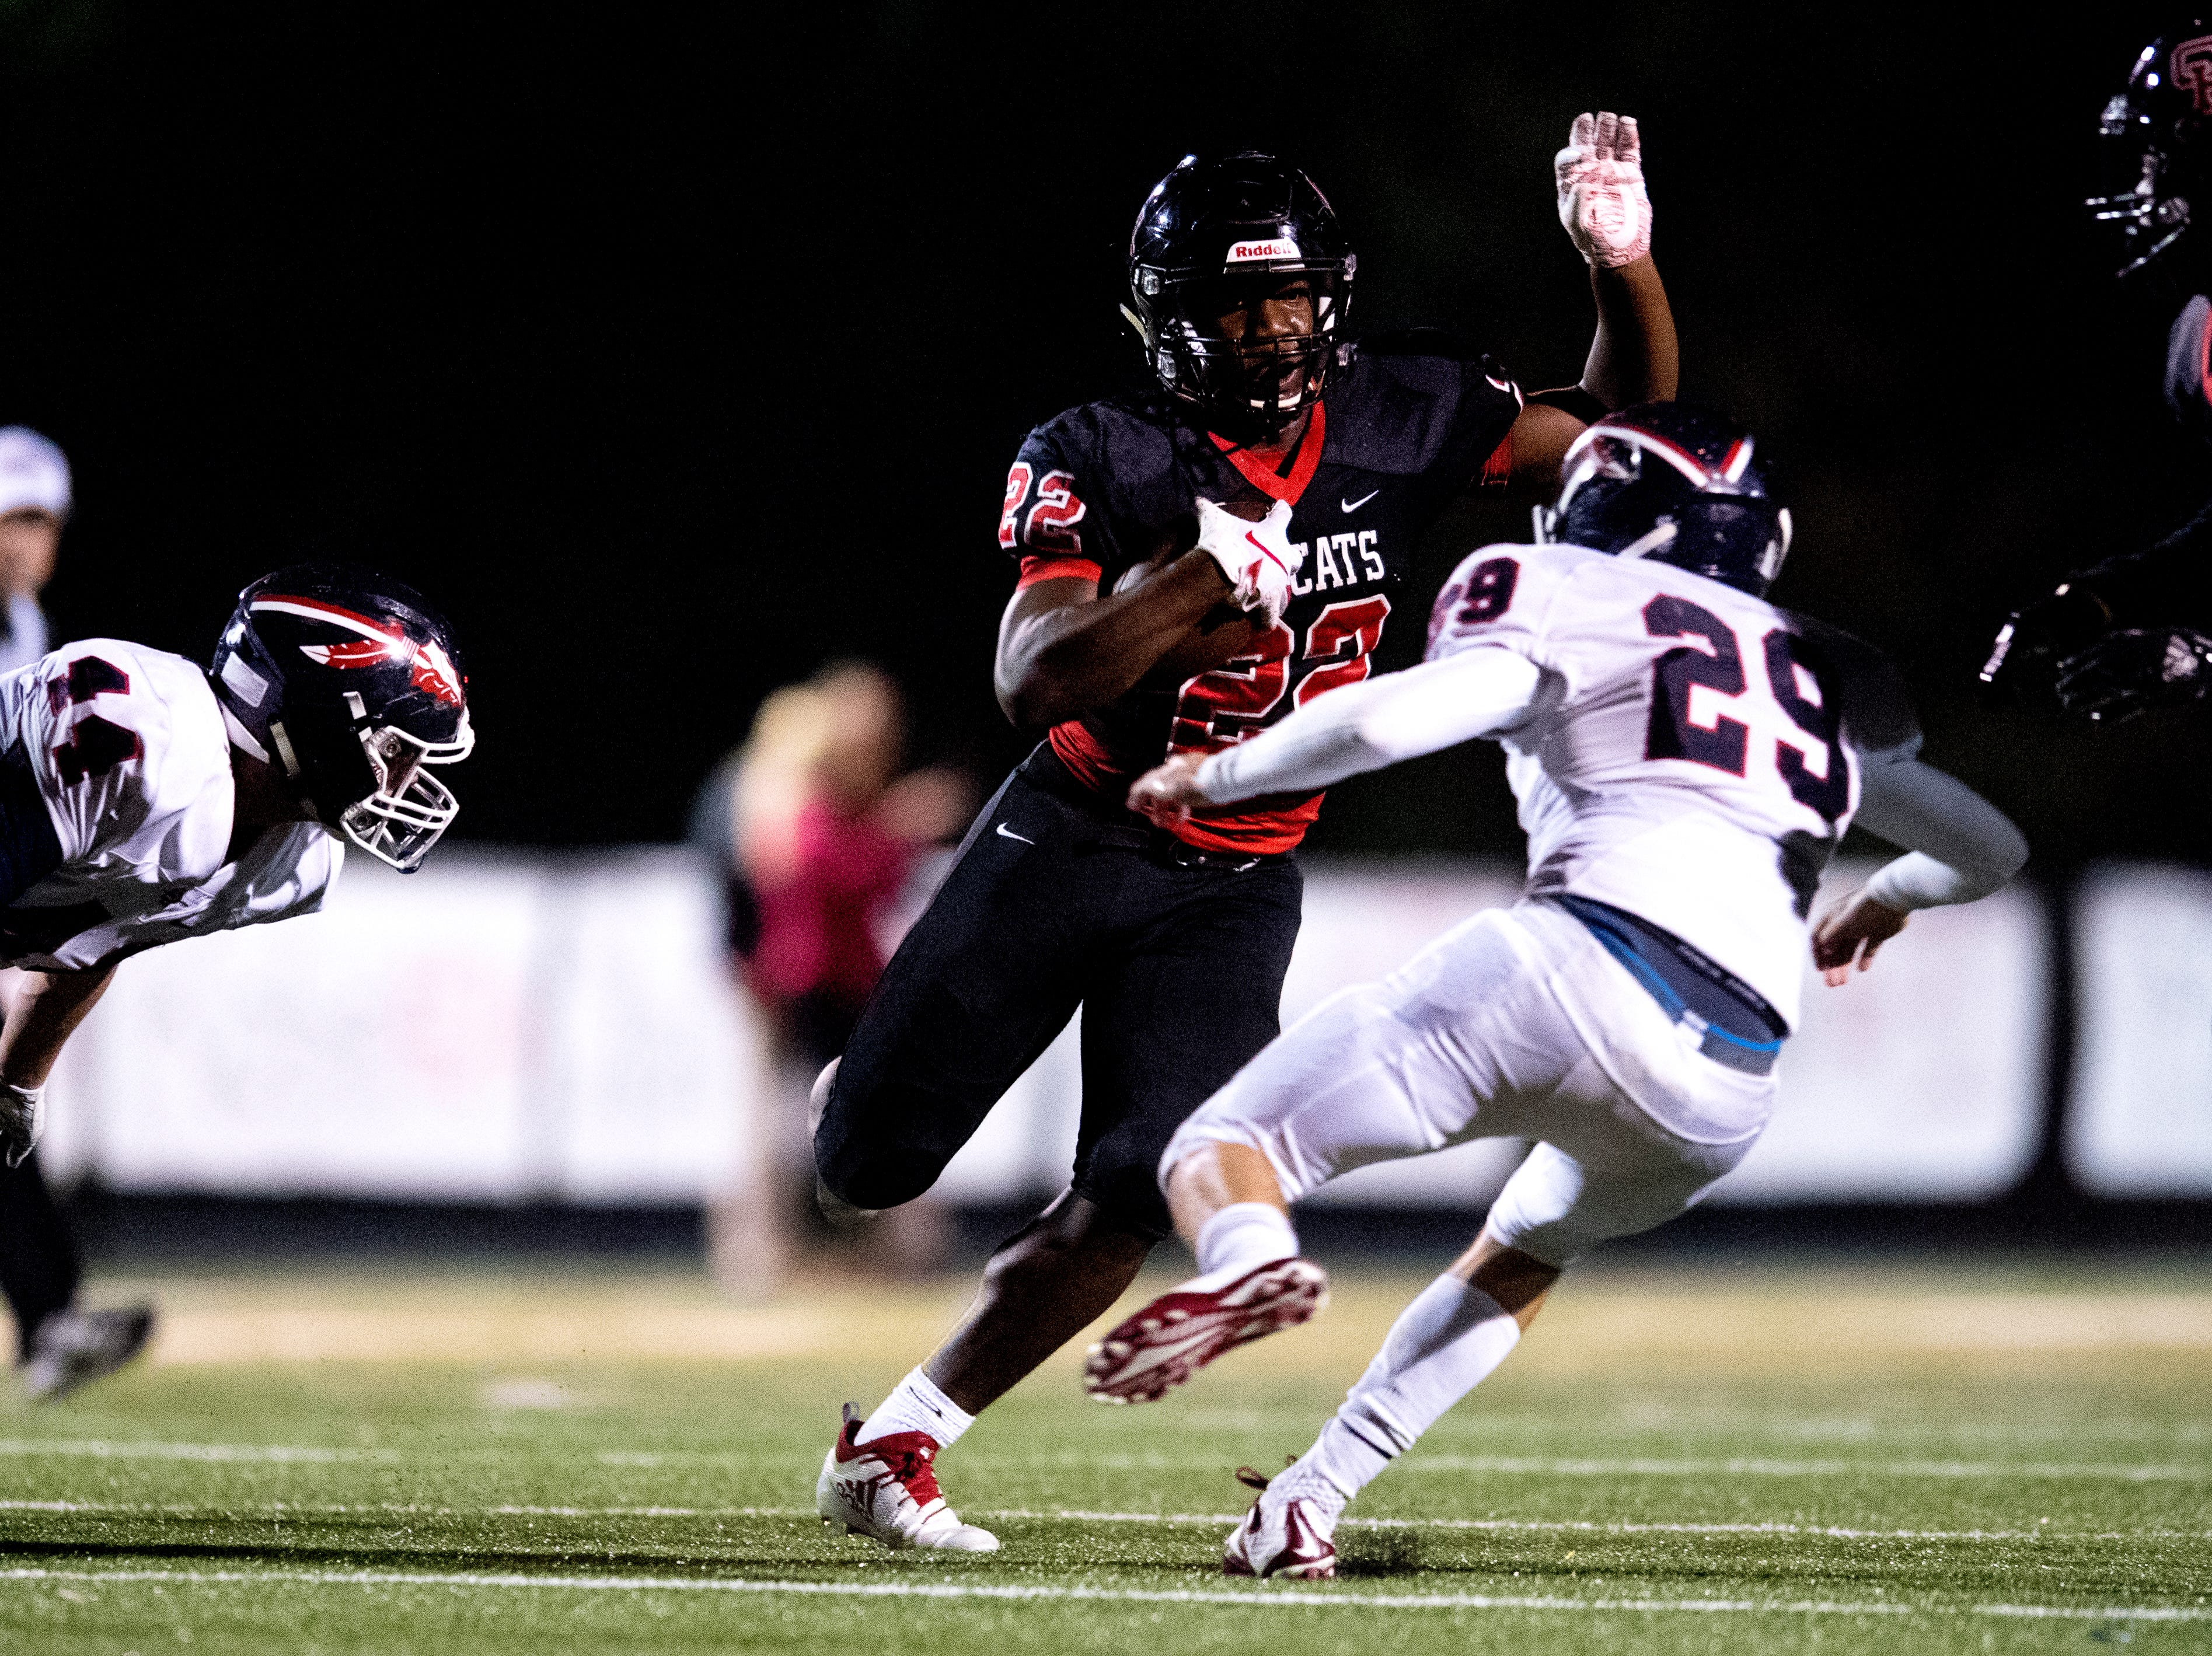 Central's Devone Moss (22) runs with the ball as South-Doyle's Isaac Hamilton (29) defends during a football game between Central and South-Doyle at Central High School in Knoxville, Tennessee on Friday, October 19, 2018.